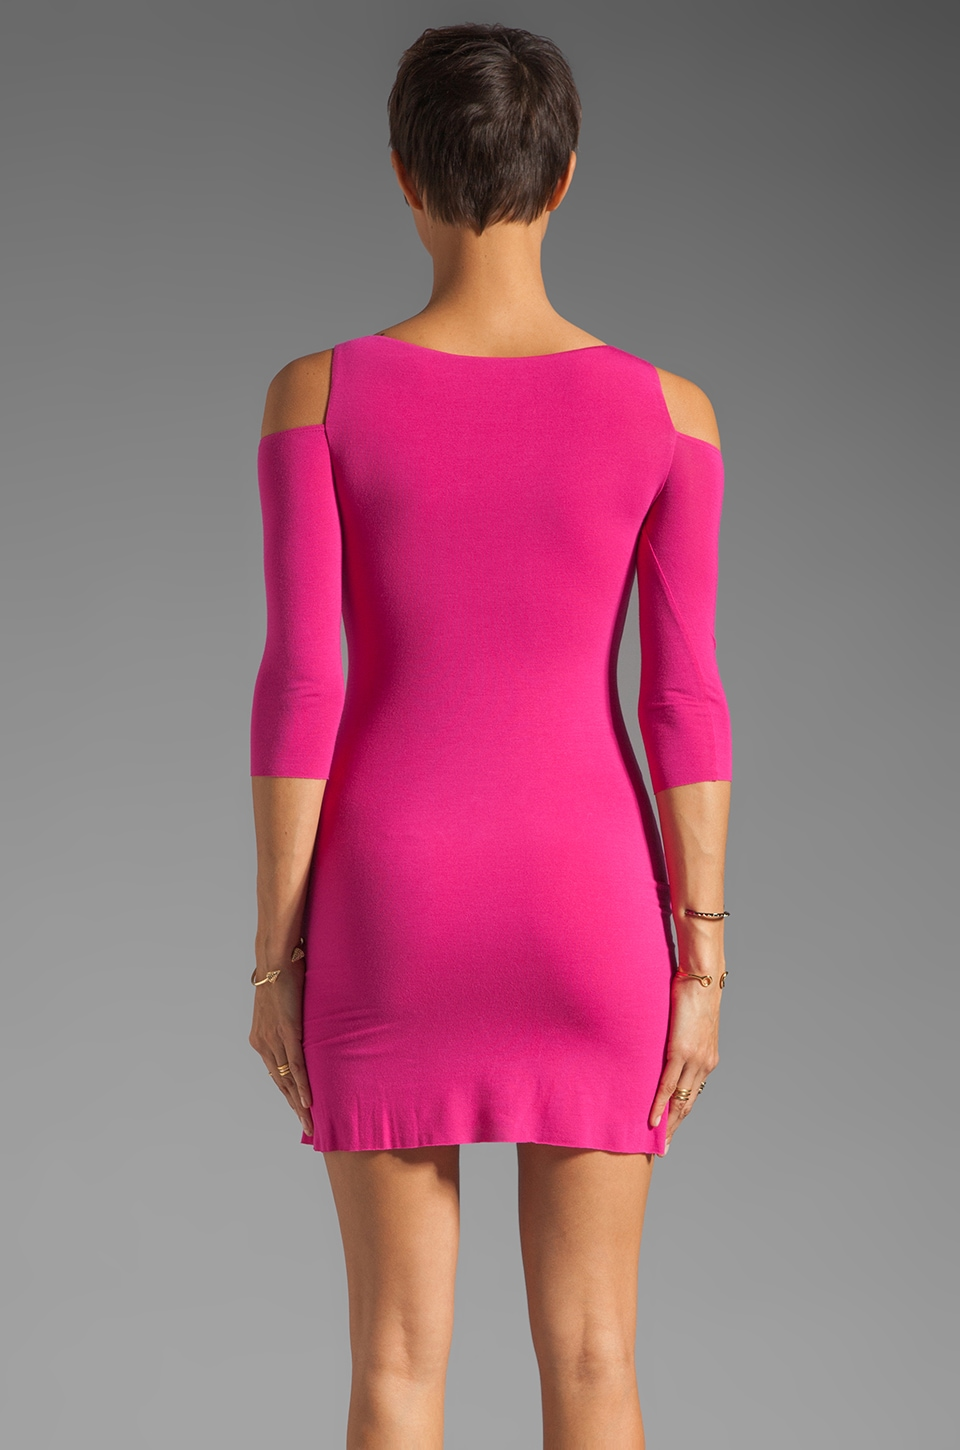 Bailey 44 Performance Enhancing Dress in Pink